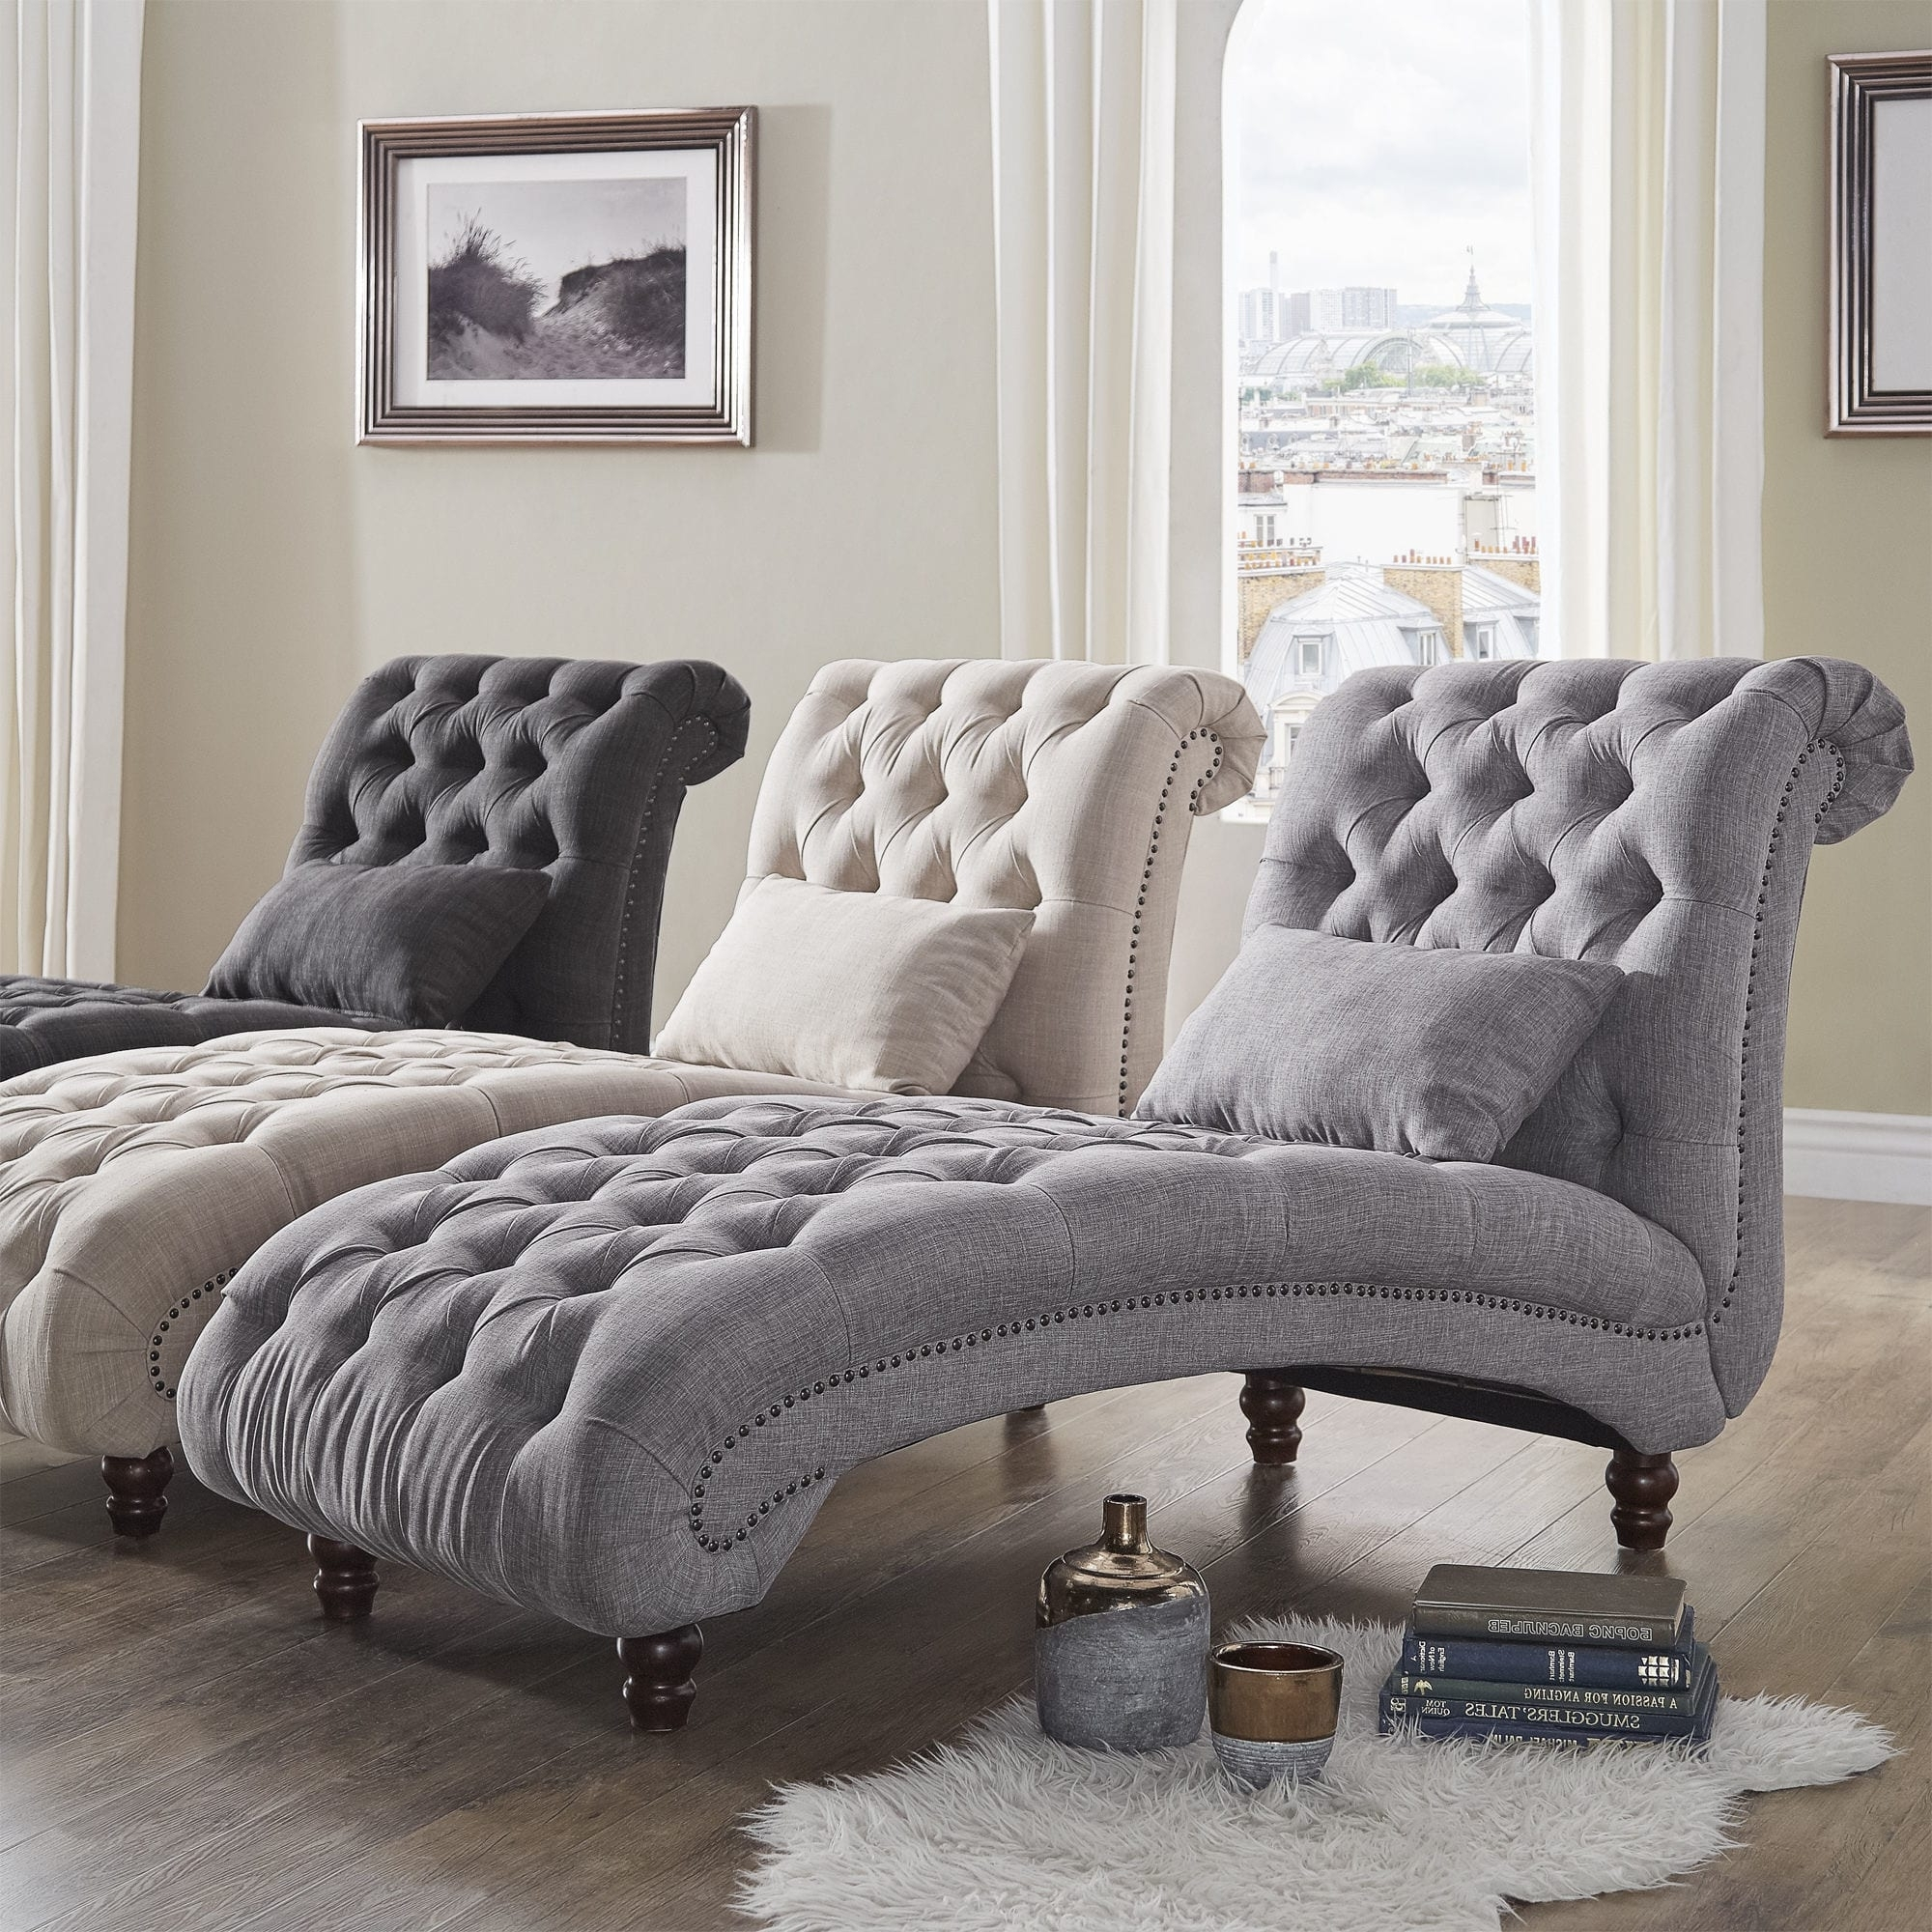 Oversized Chaises With 2017 Knightsbridge Tufted Oversized Chaise Loungeinspire Q Artisan (View 4 of 15)